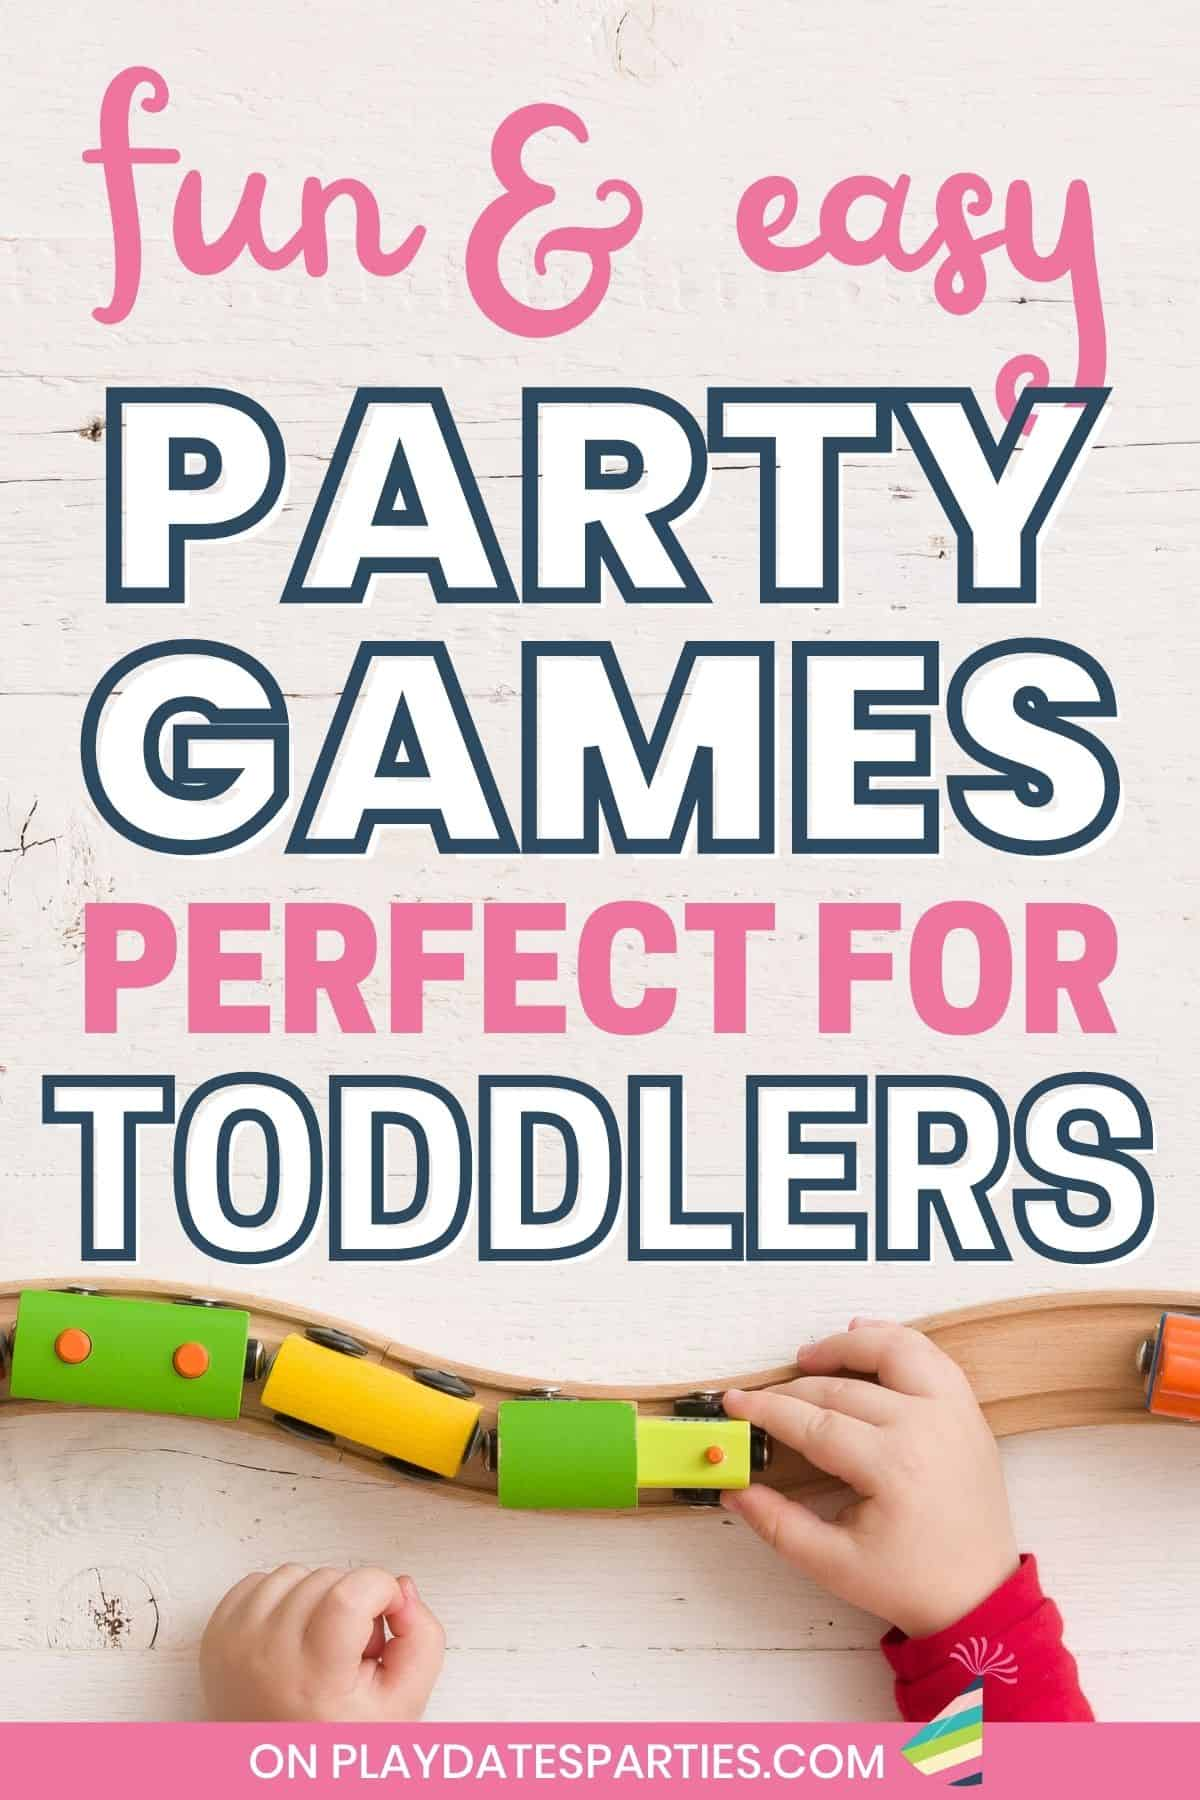 Photo with text overlay fun and easy party games perfect for toddlers.